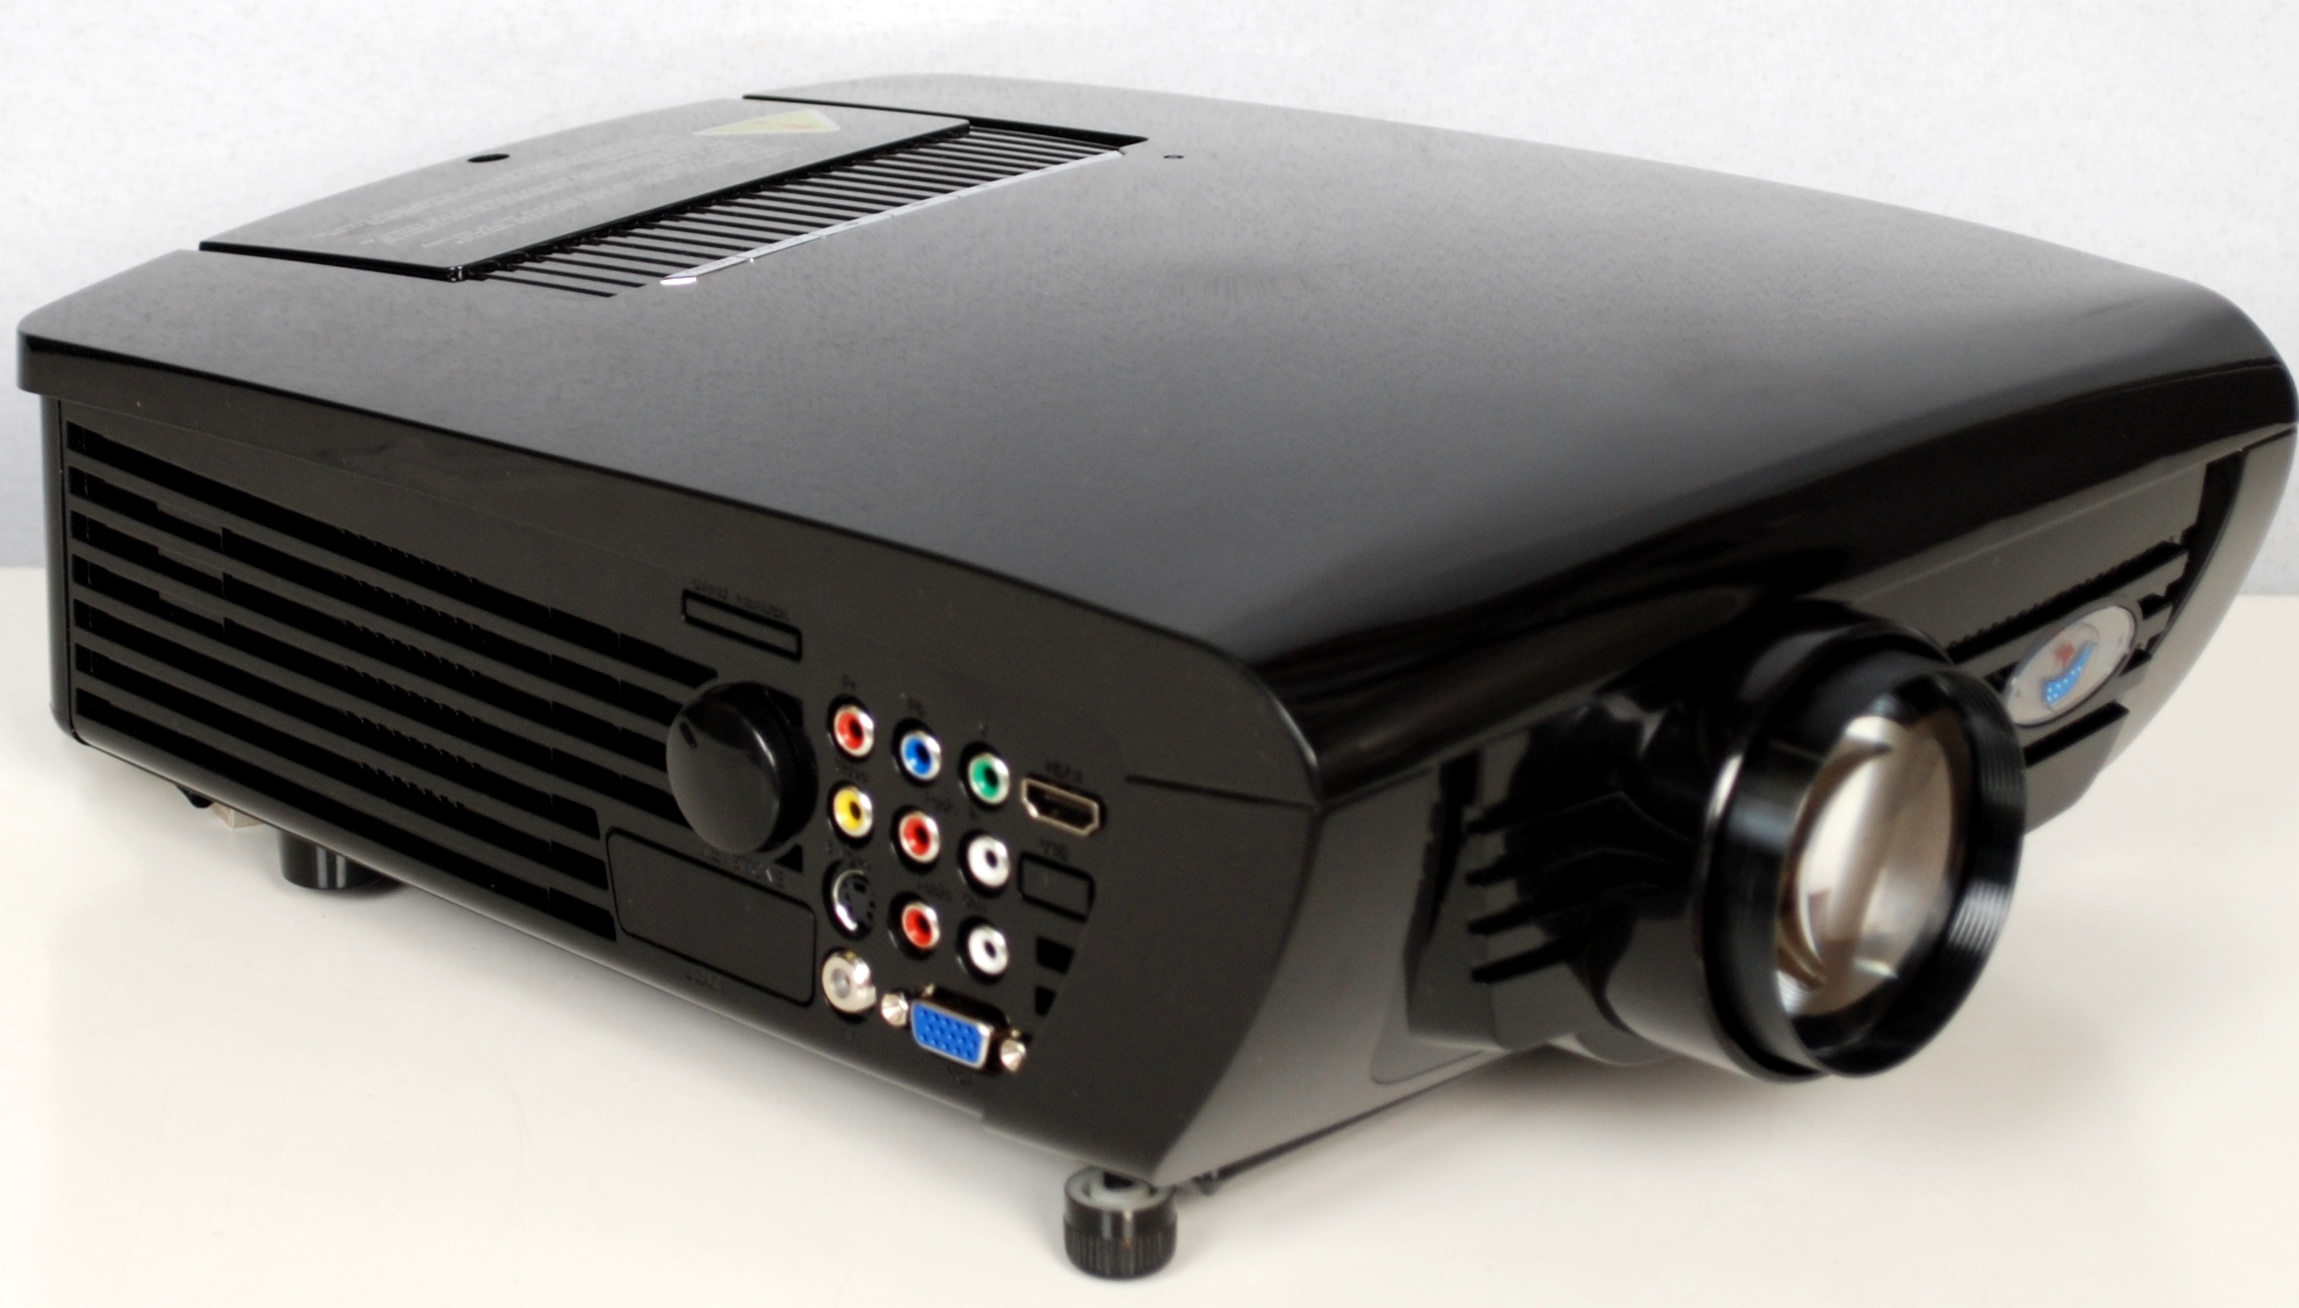 Review of Digital Galaxy DG-737 Dream Land HDMI LCD Projector